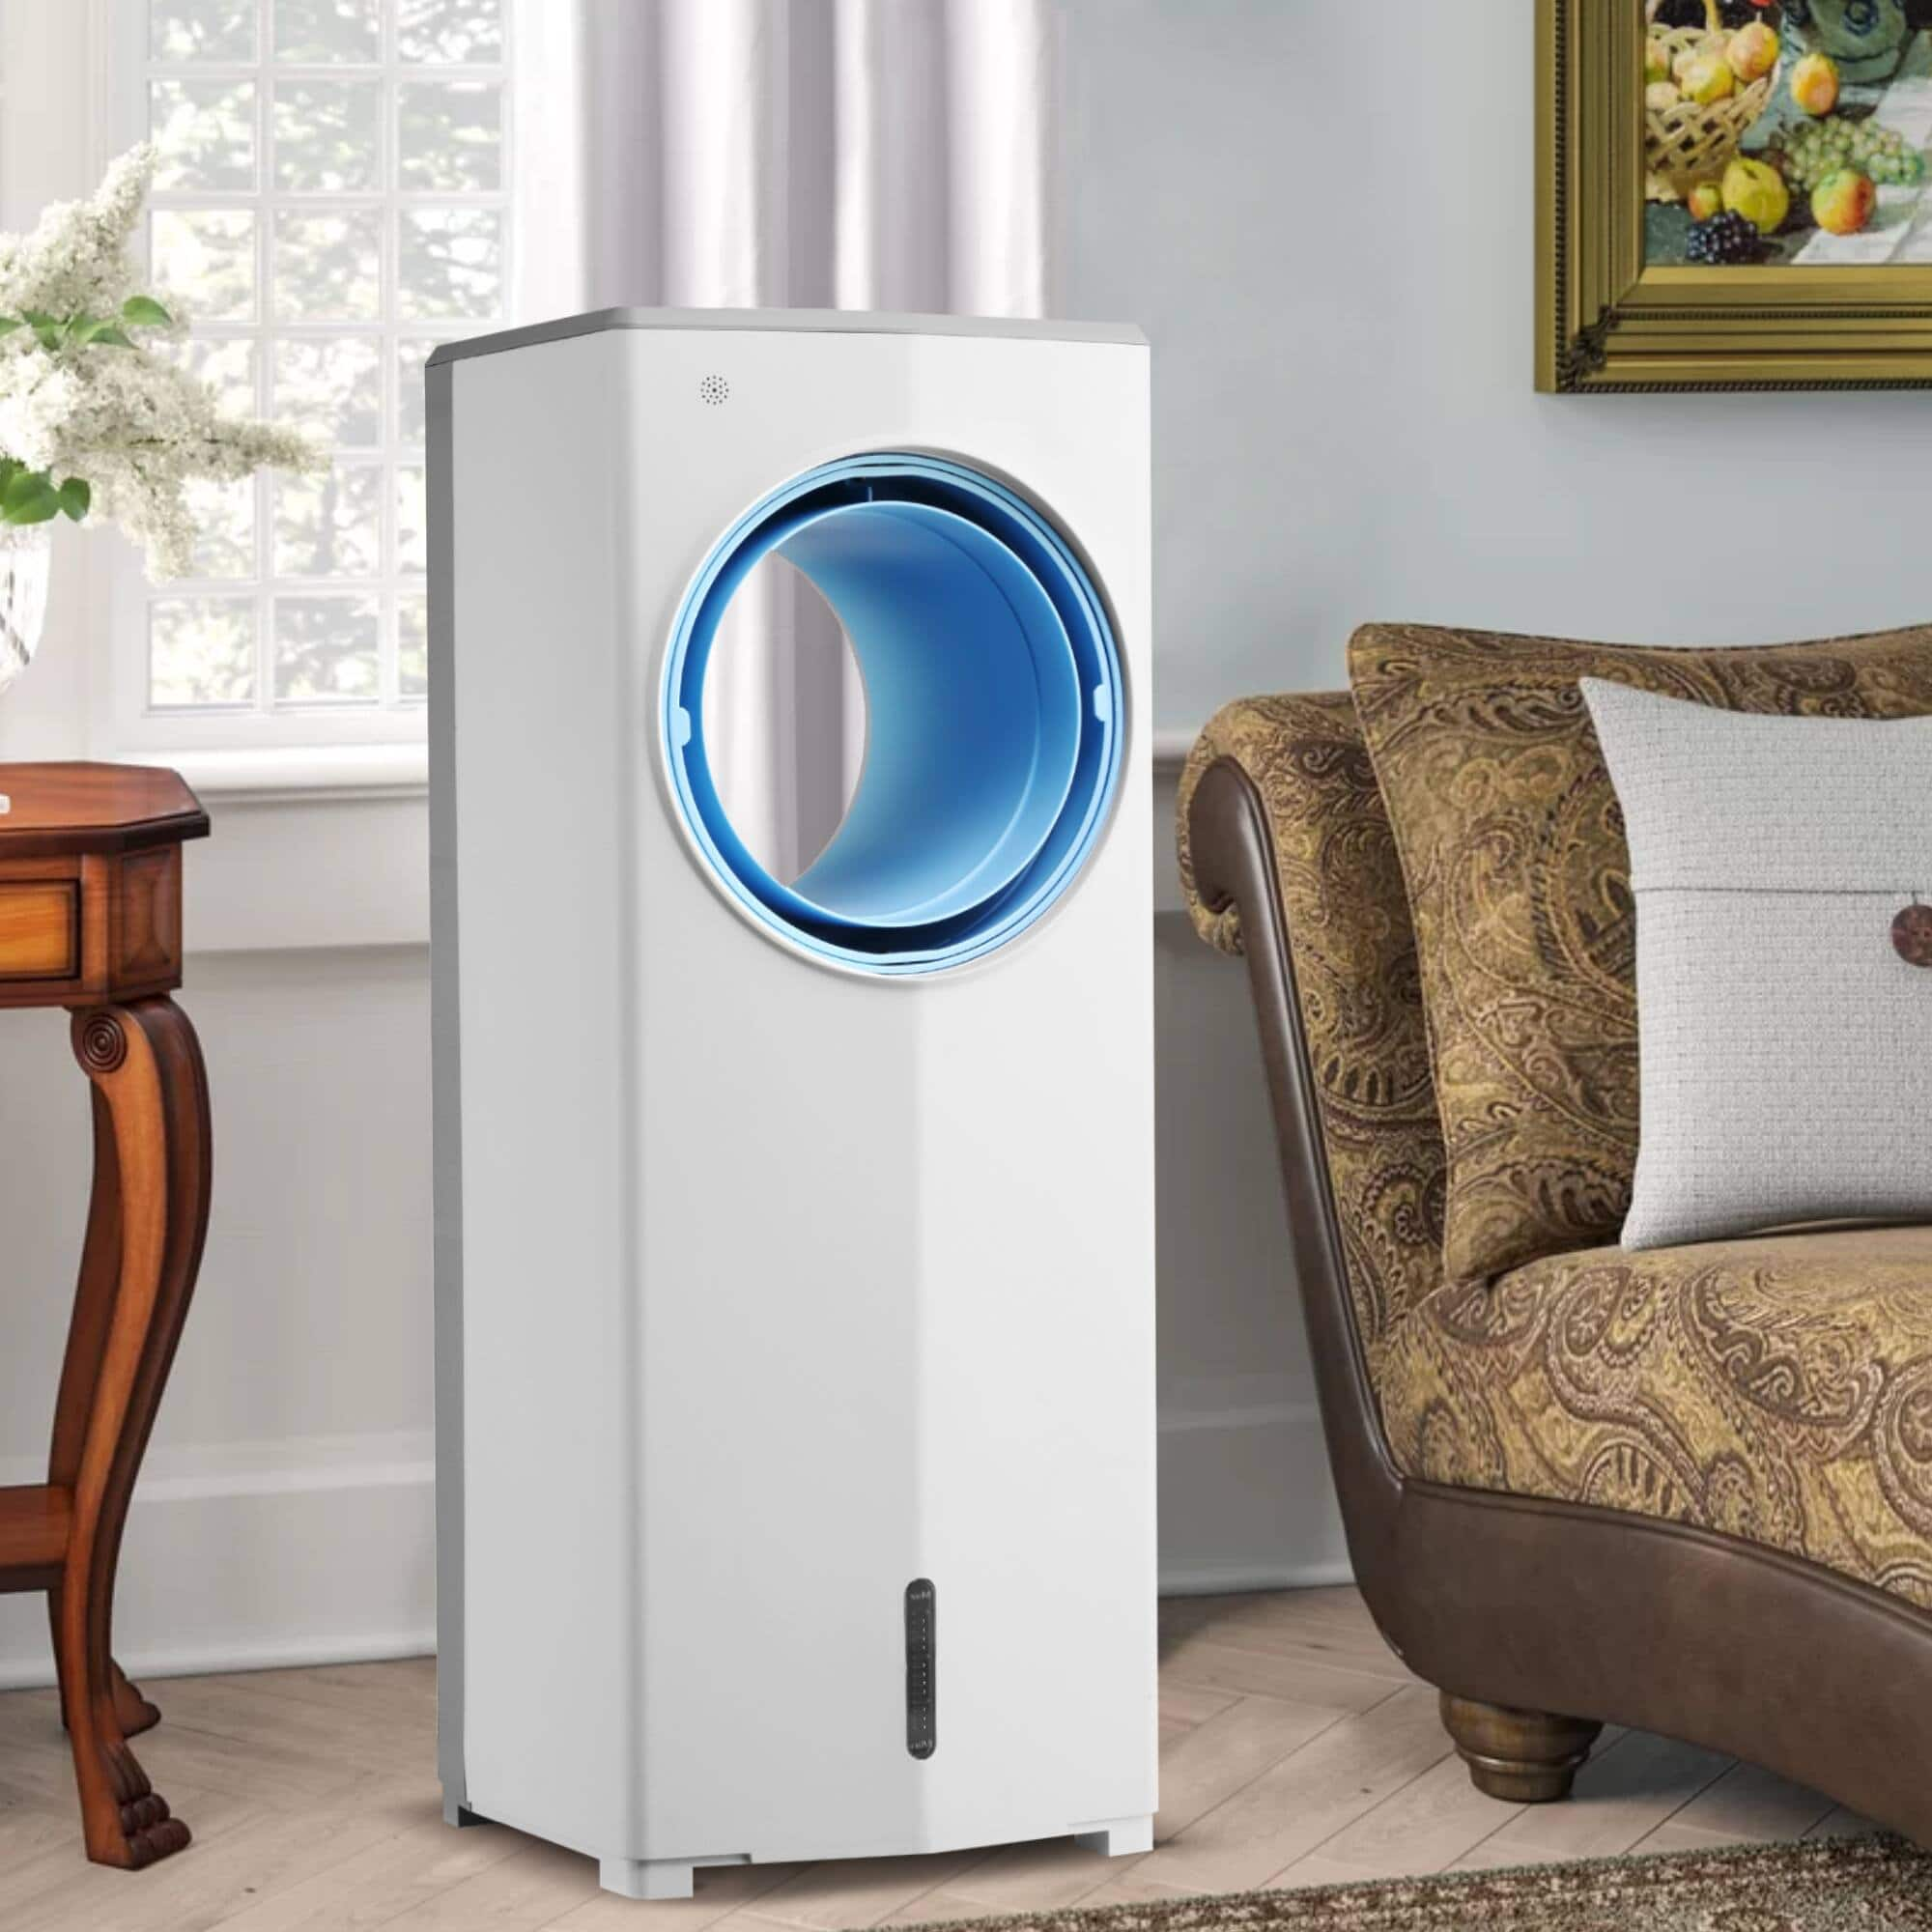 Wesfital Evaporative Air Cooler With Remote Control for $79.99 + Free Shipping